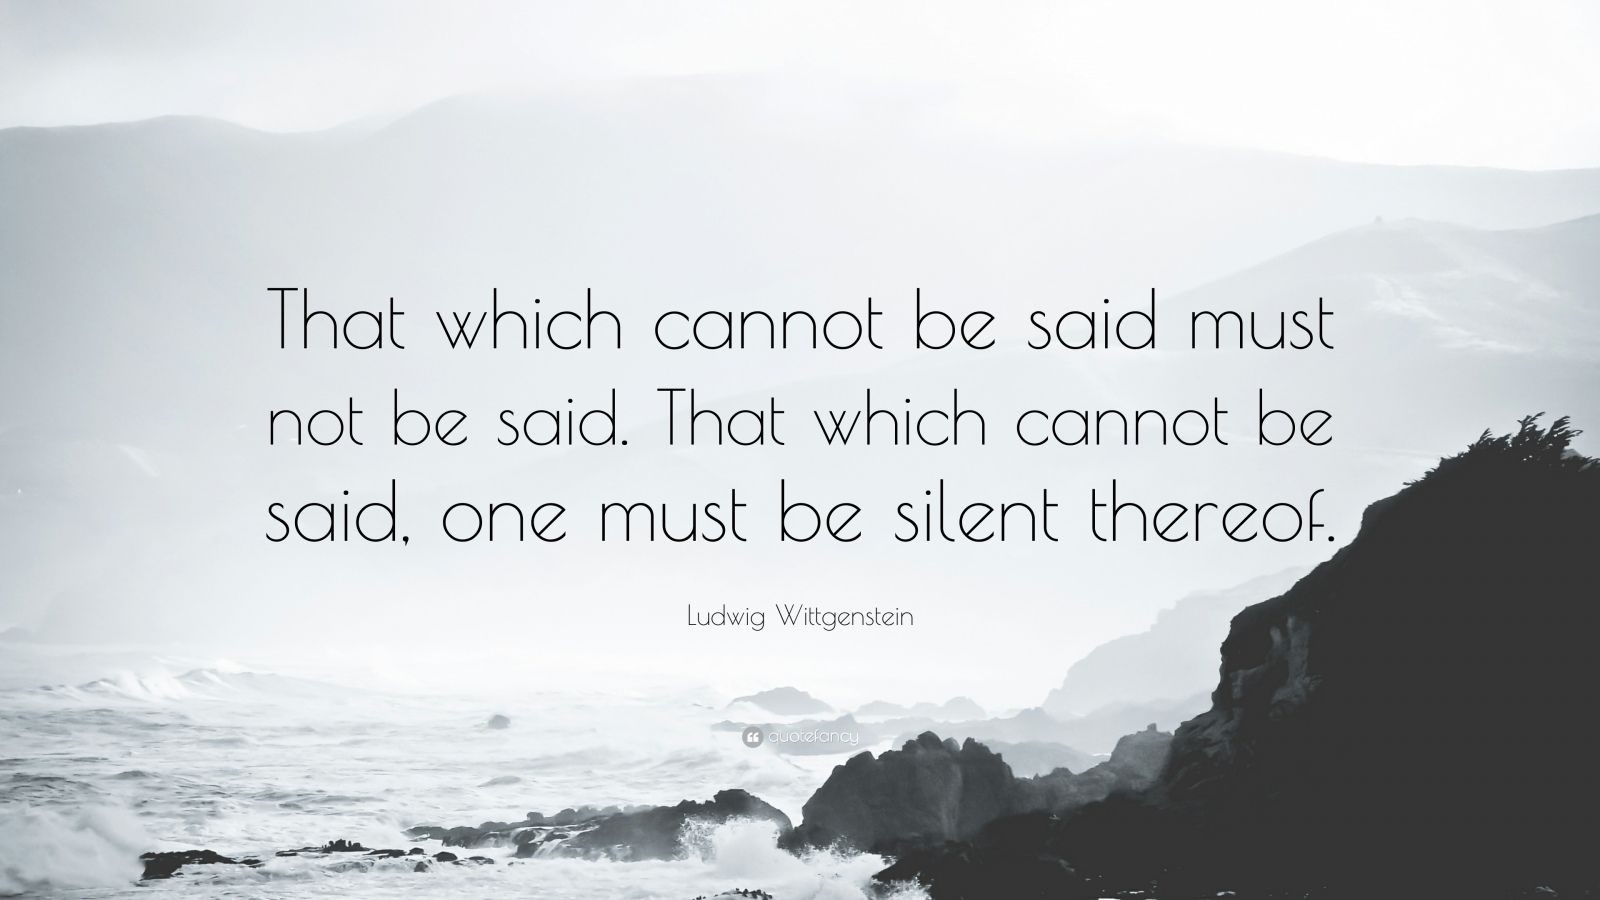 """Ludwig Wittgenstein Quote: """"That which cannot be said must not be said. That which cannot be said, one must be silent thereof."""""""